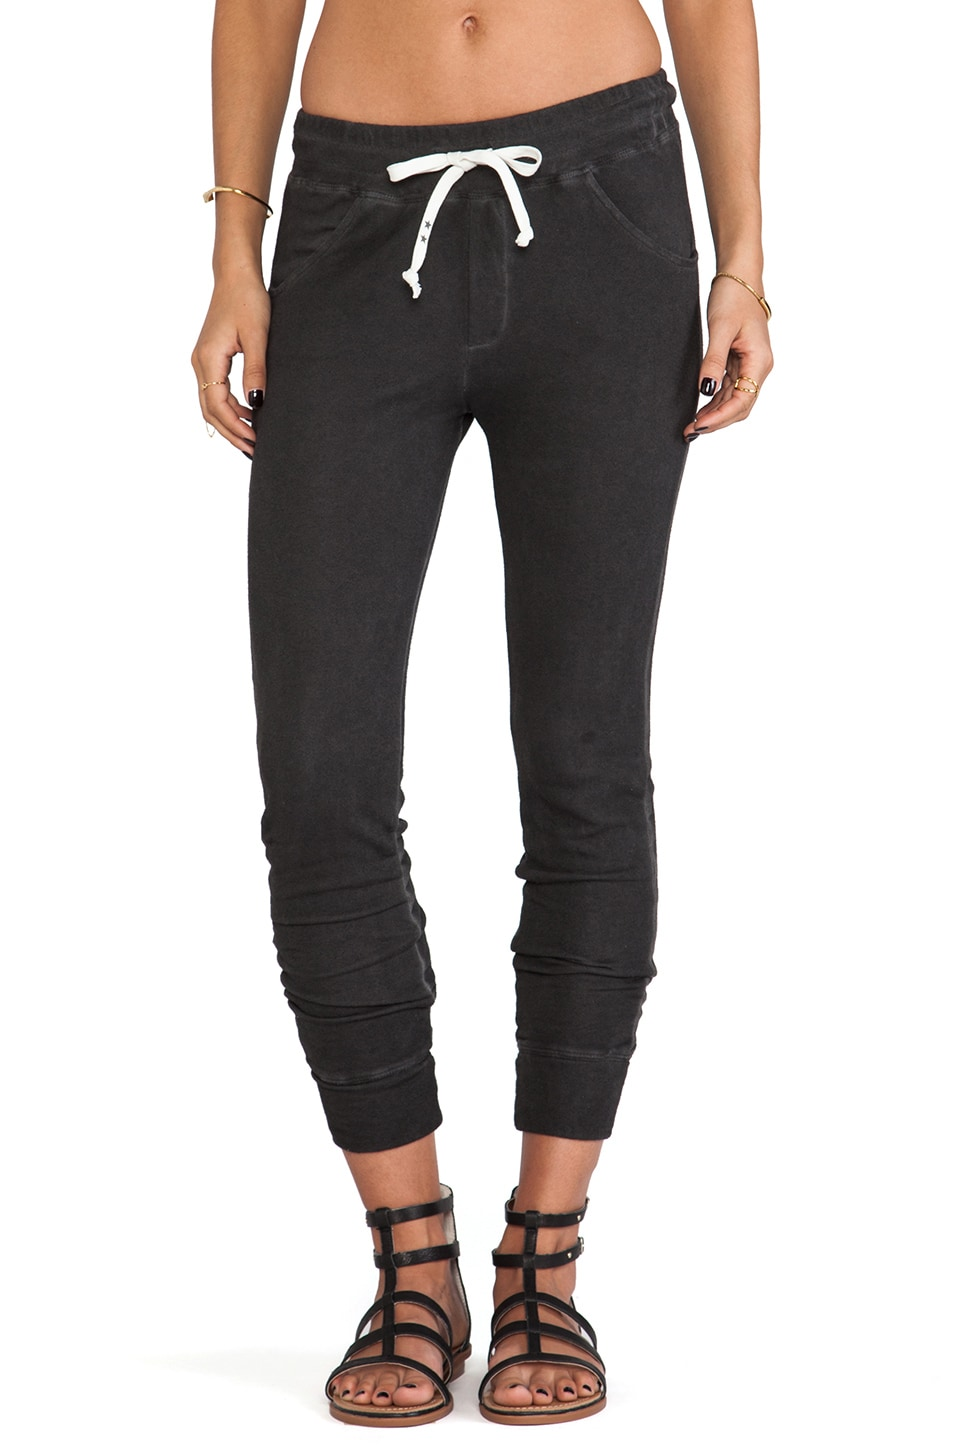 291 Relaxed Slouchy Sweatpant in Antique Wash Black